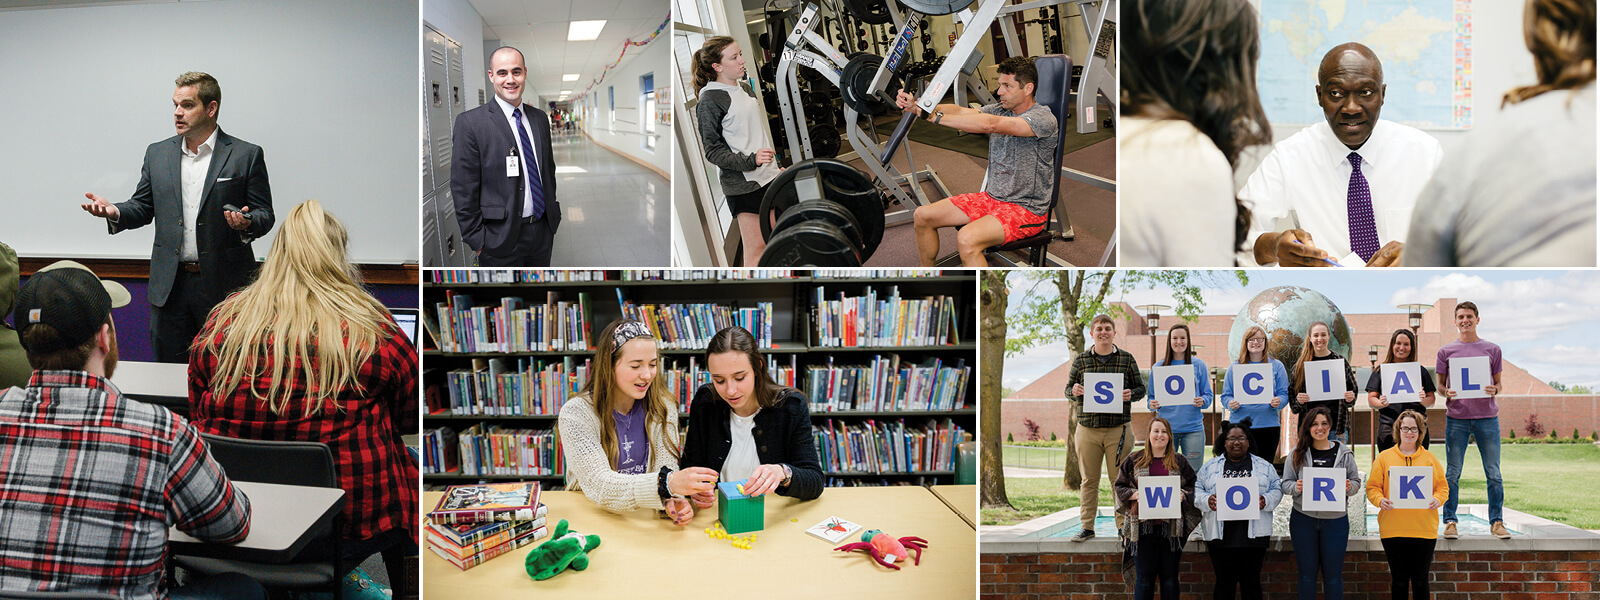 collage of photos showing students in education, exercise science, and political science settings